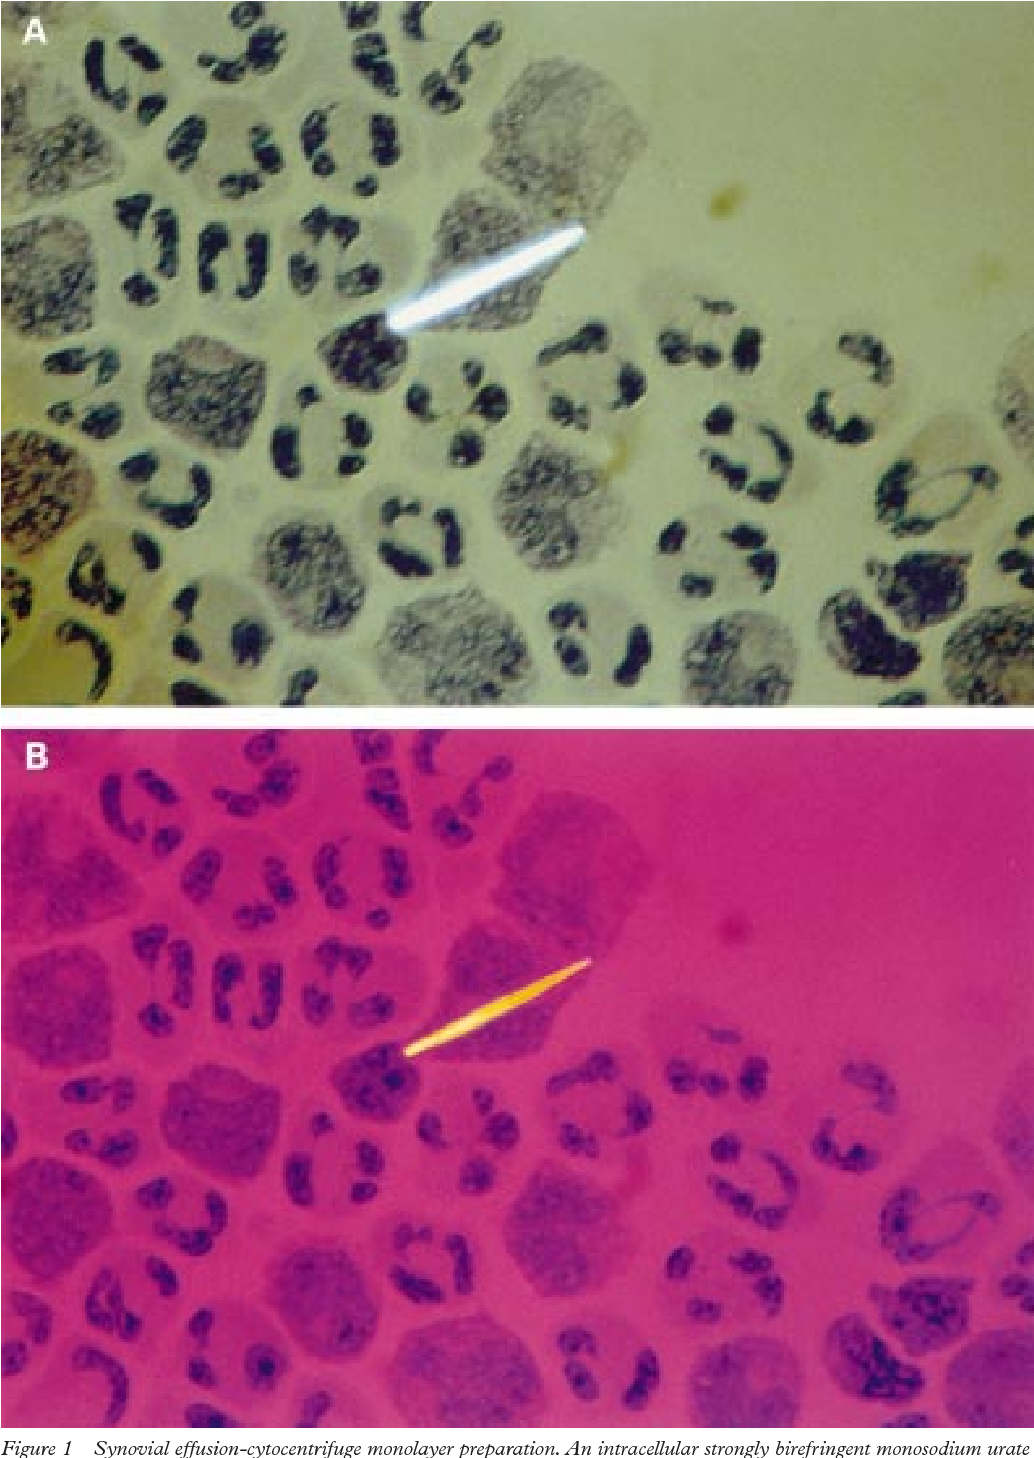 Figure 1 from [Diff-Quik(R) staining method for detection and